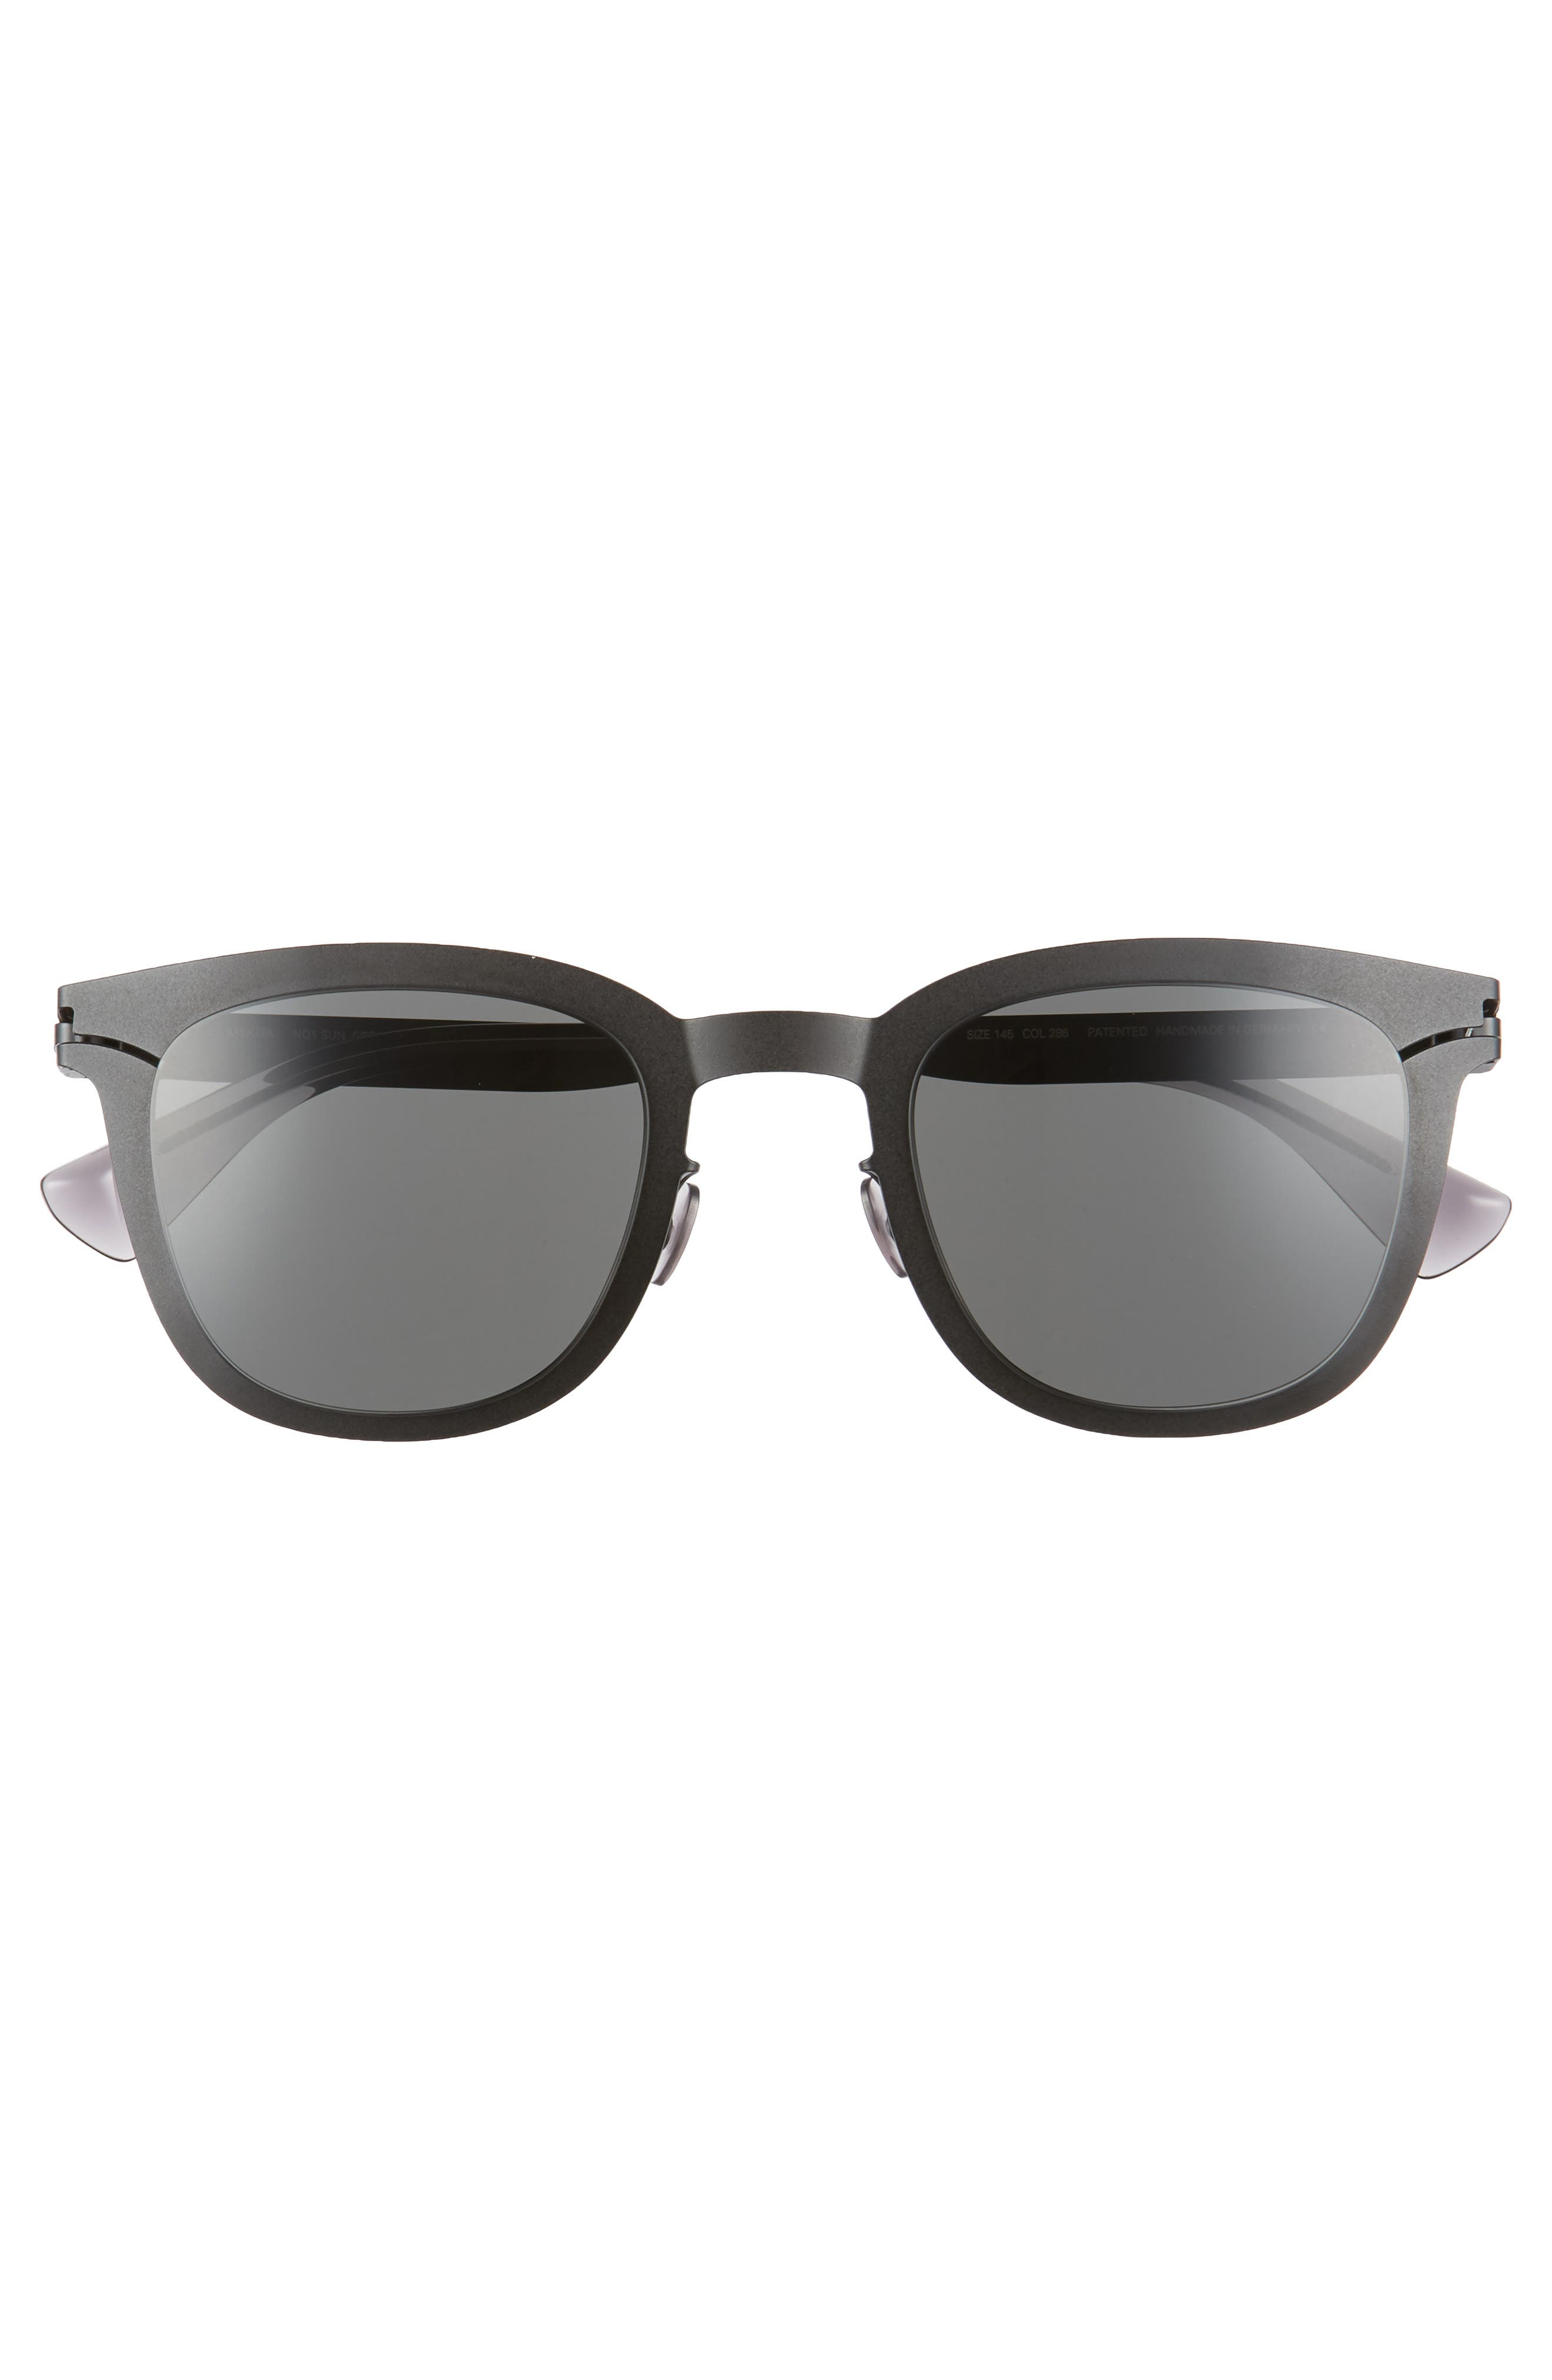 Gregory 49mm Sunglasses,                             Alternate thumbnail 2, color,                             001